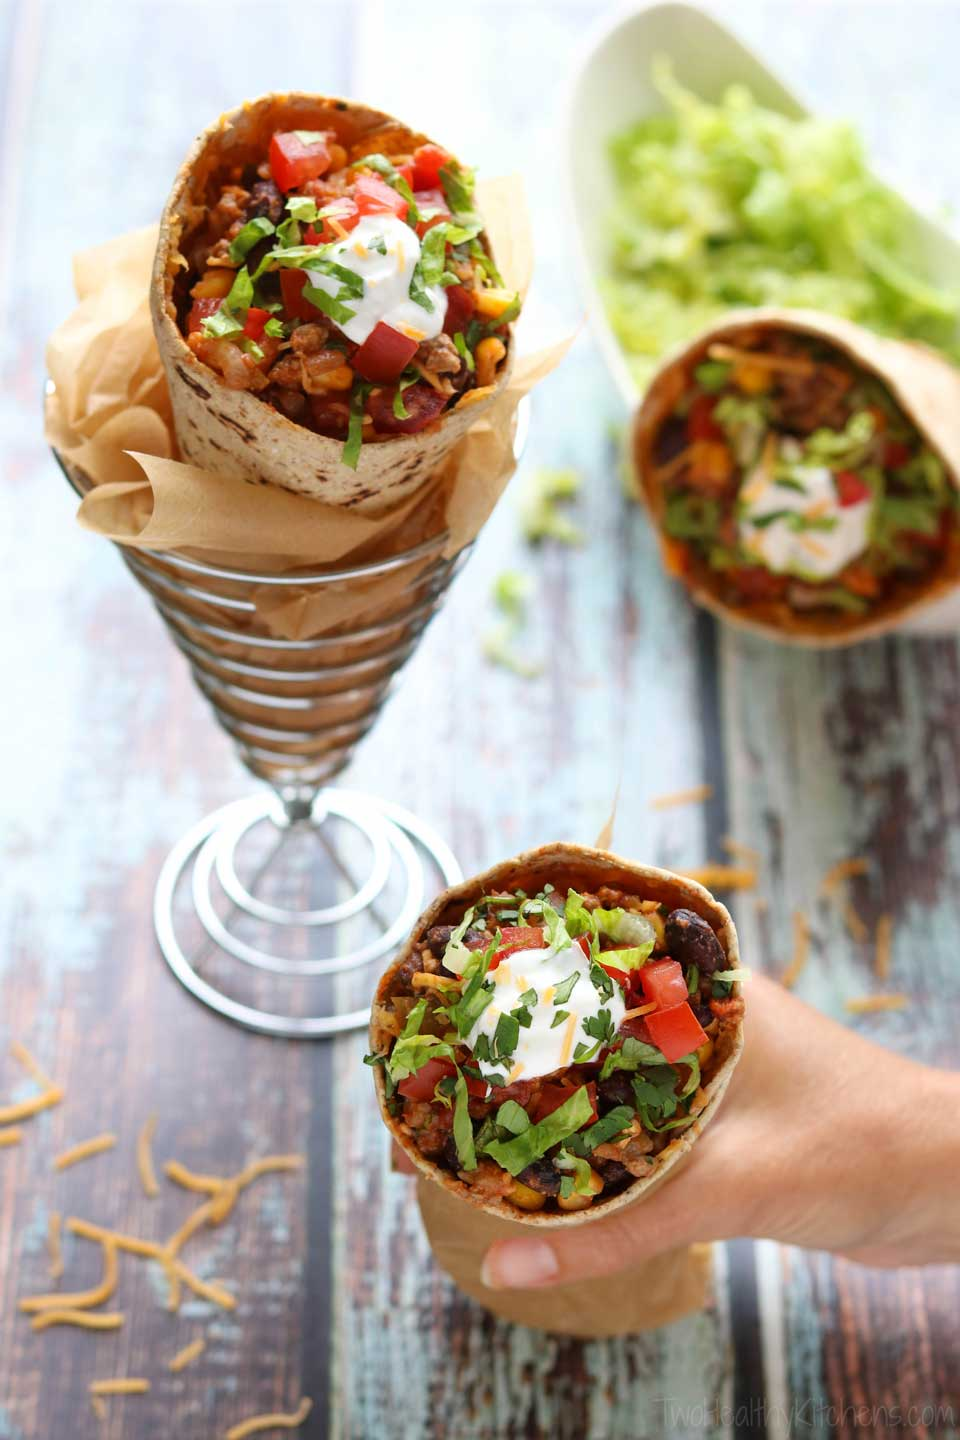 This make-ahead dinner recipe is a perfect grab-and-go meal! Portable tacos that are ready when you are!